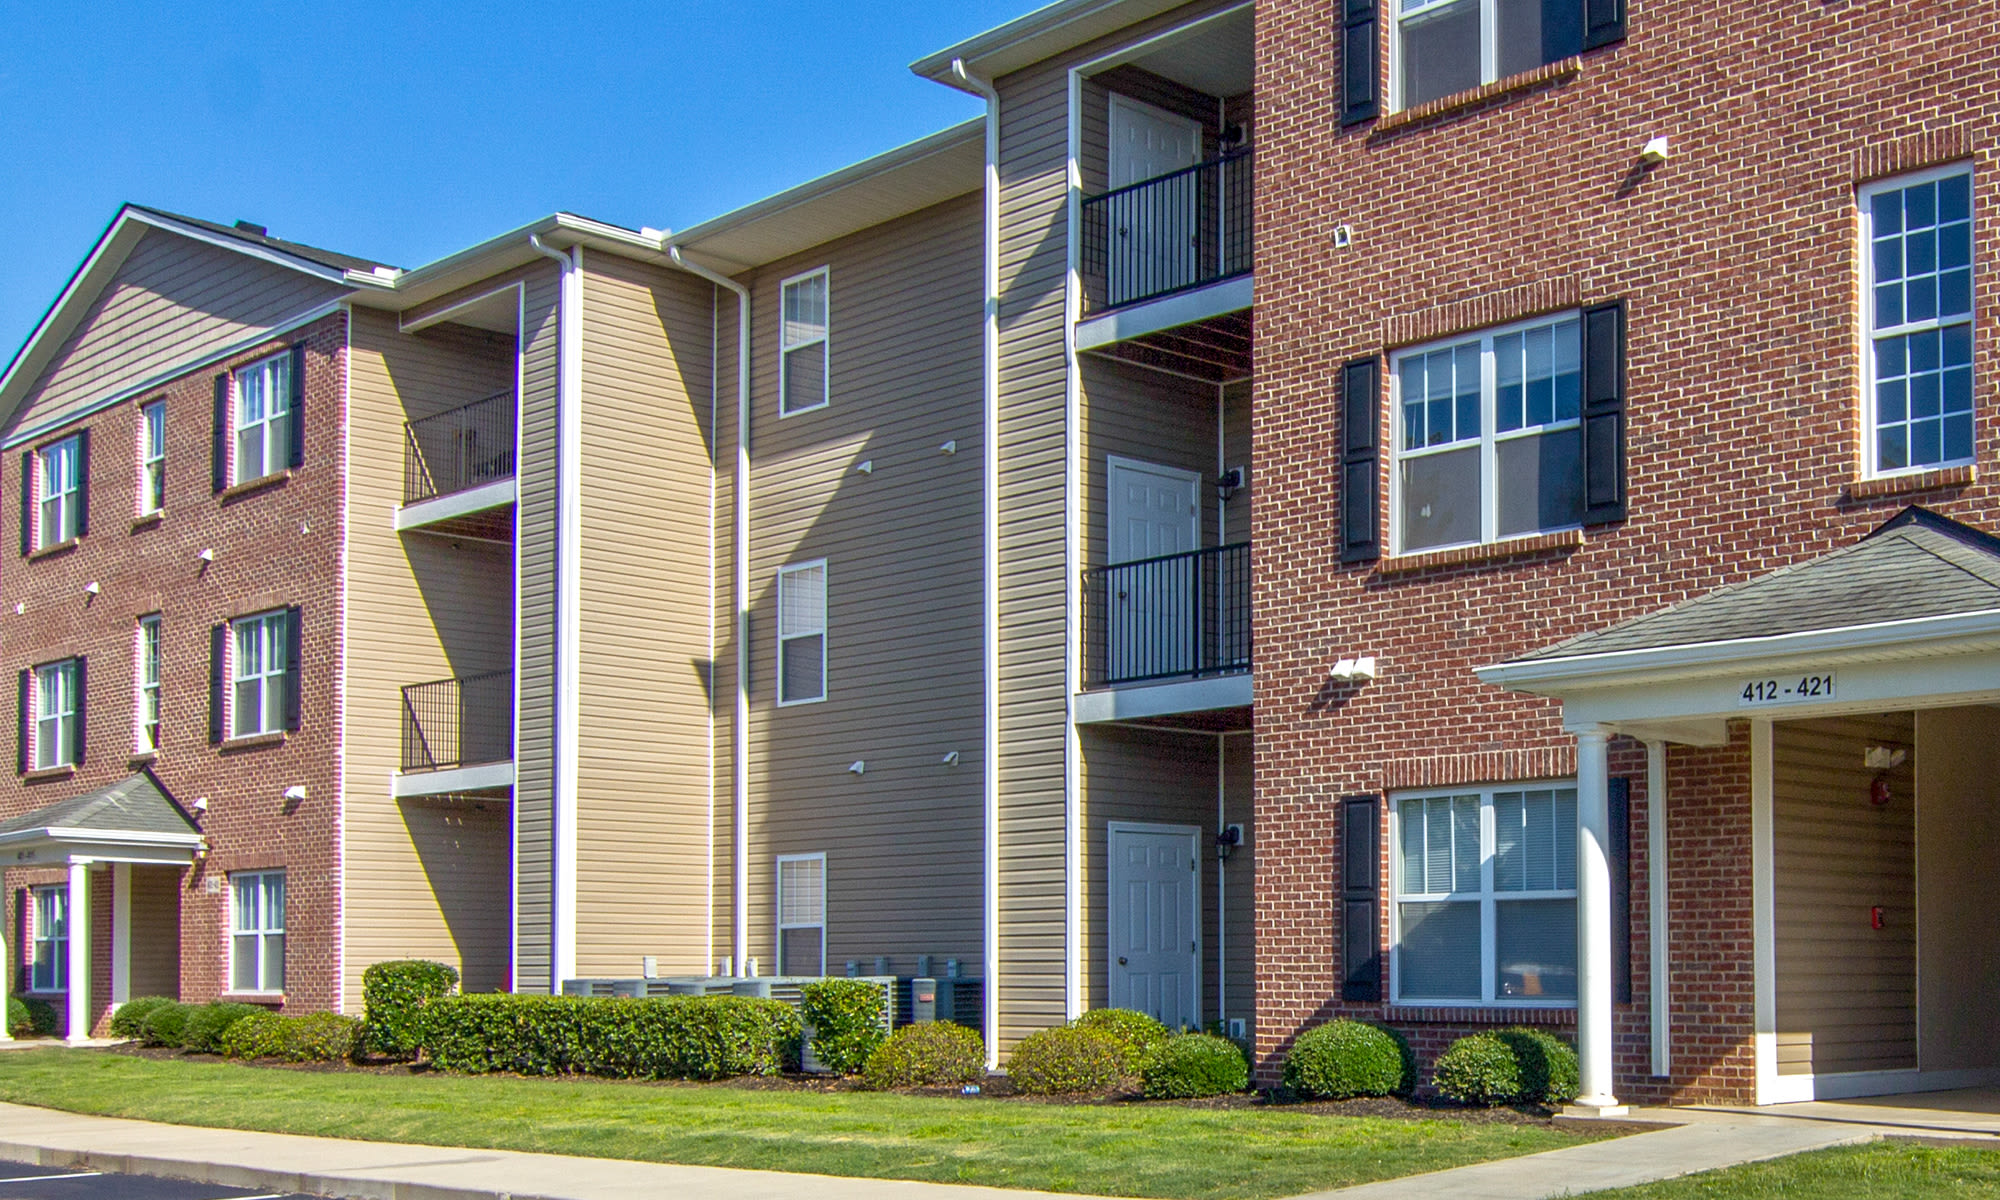 Apartments in Lexington, South Carolina